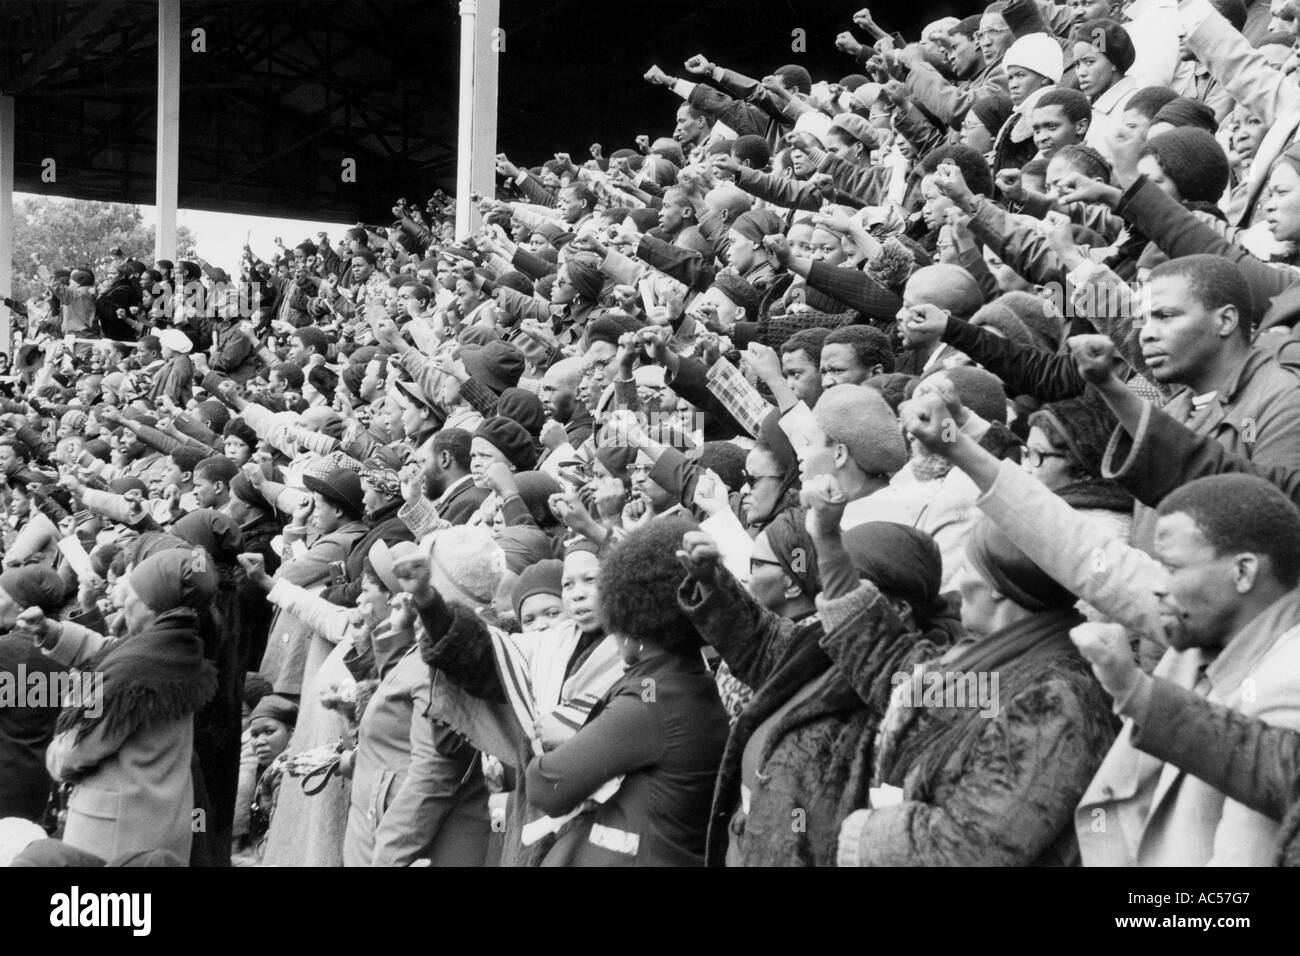 Black Power salutes at football match in South Africa 1976 - Stock Image